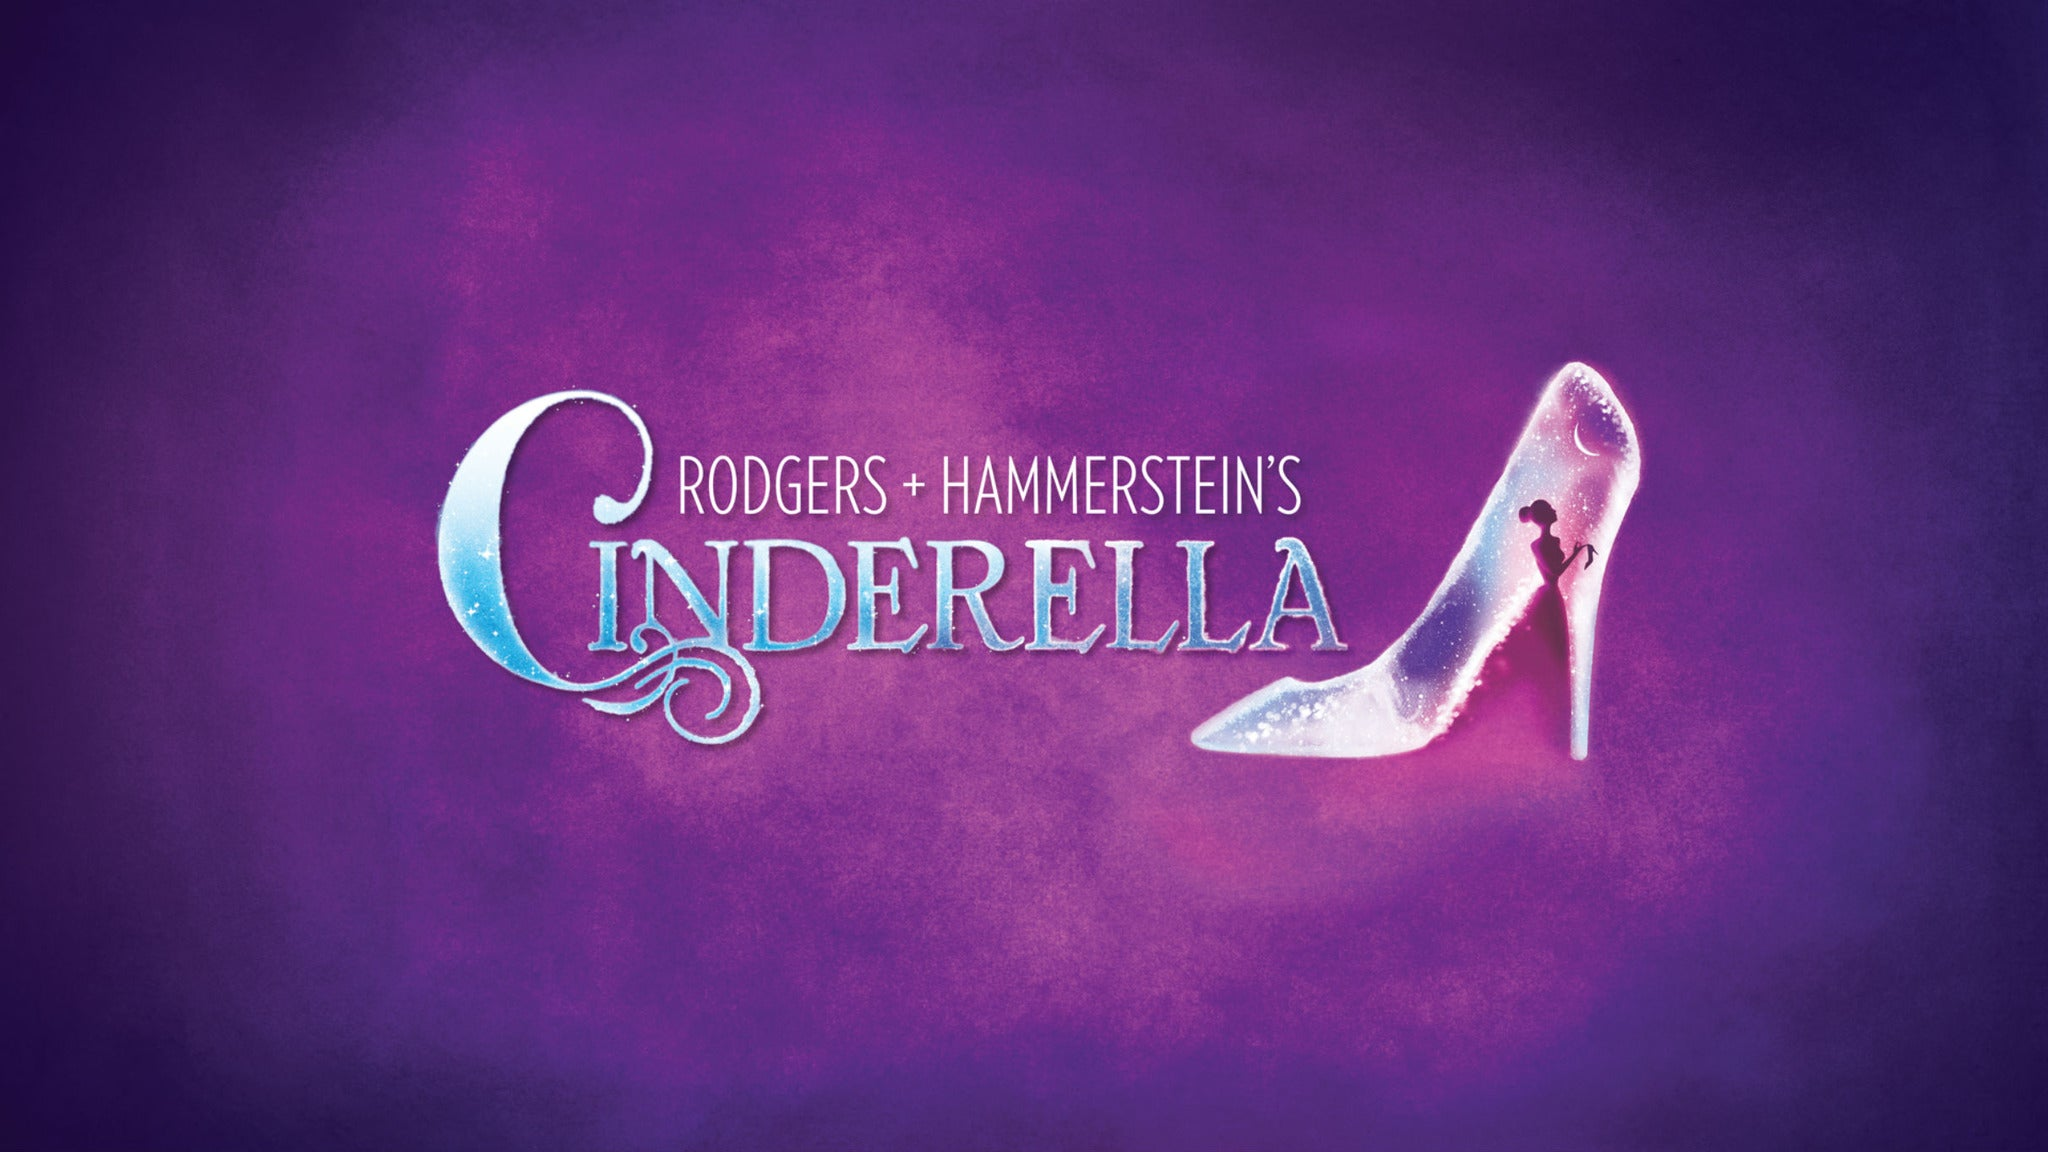 Cinderella-Theater at Community Arts Center - PA